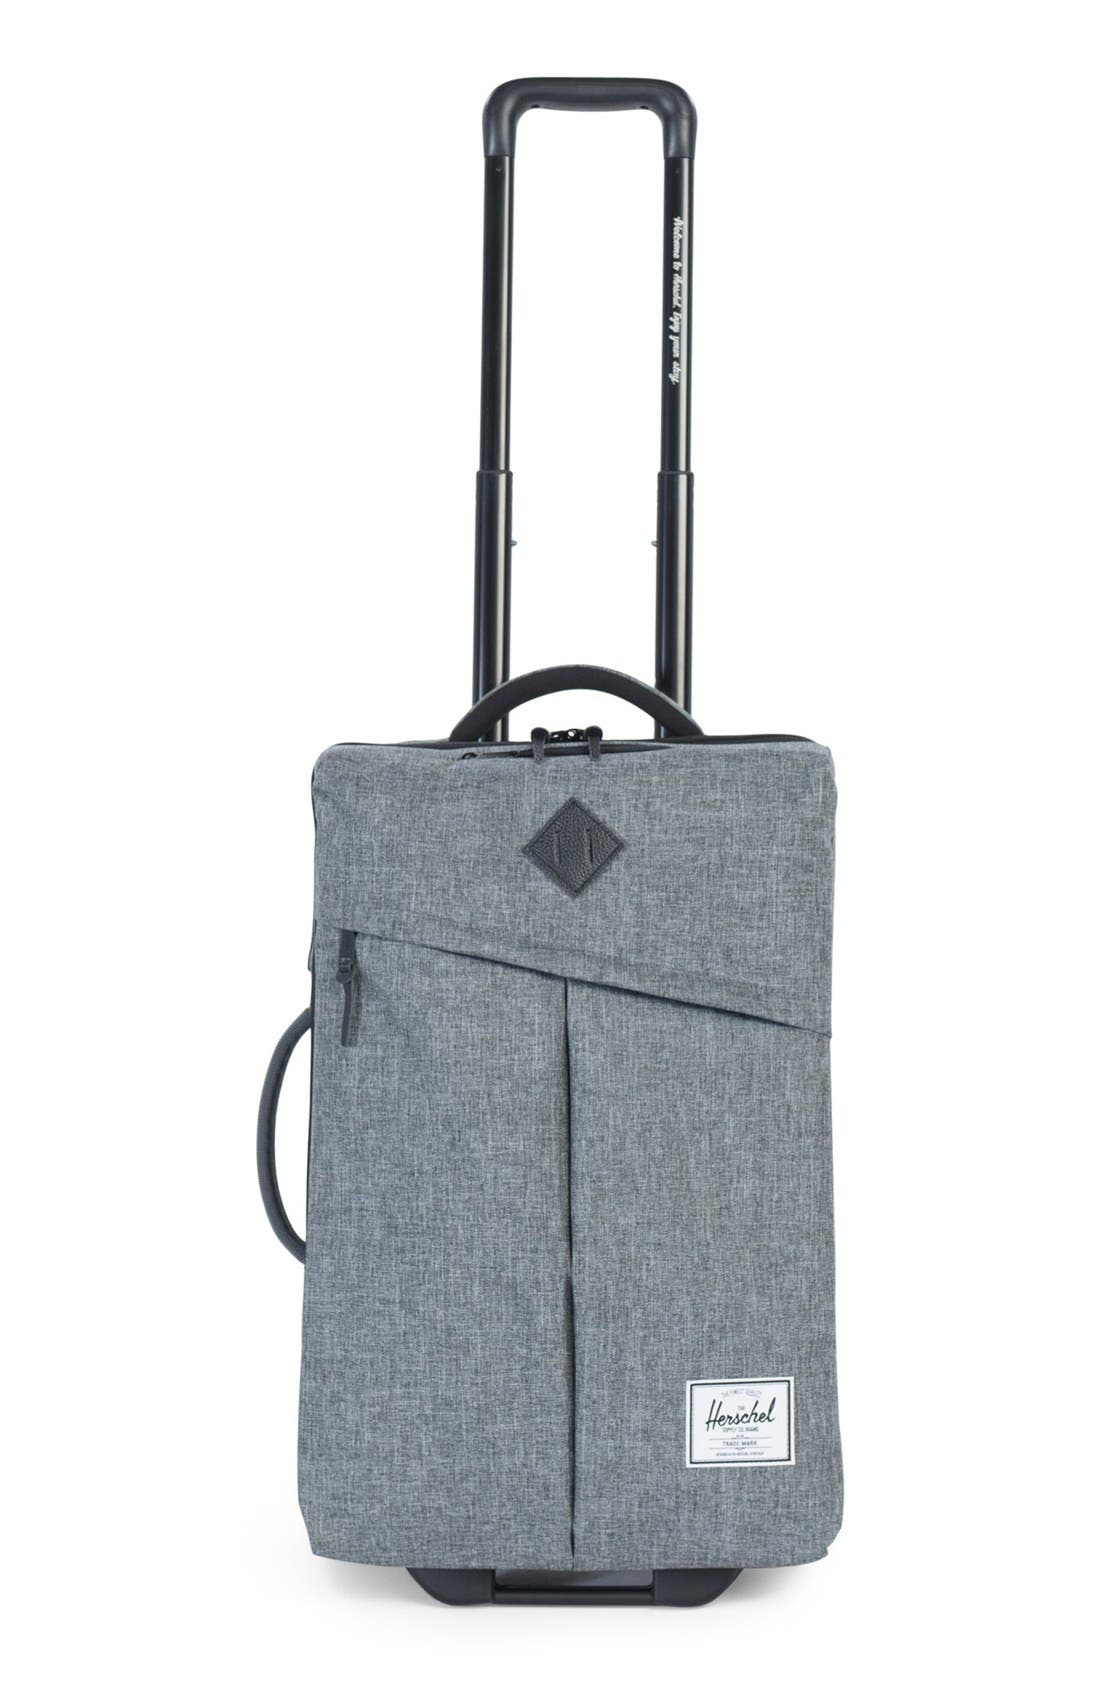 Alternate Image 1 Selected - Herschel Supply Co. 'New Campaign' Rolling Suitcase (24 Inch)